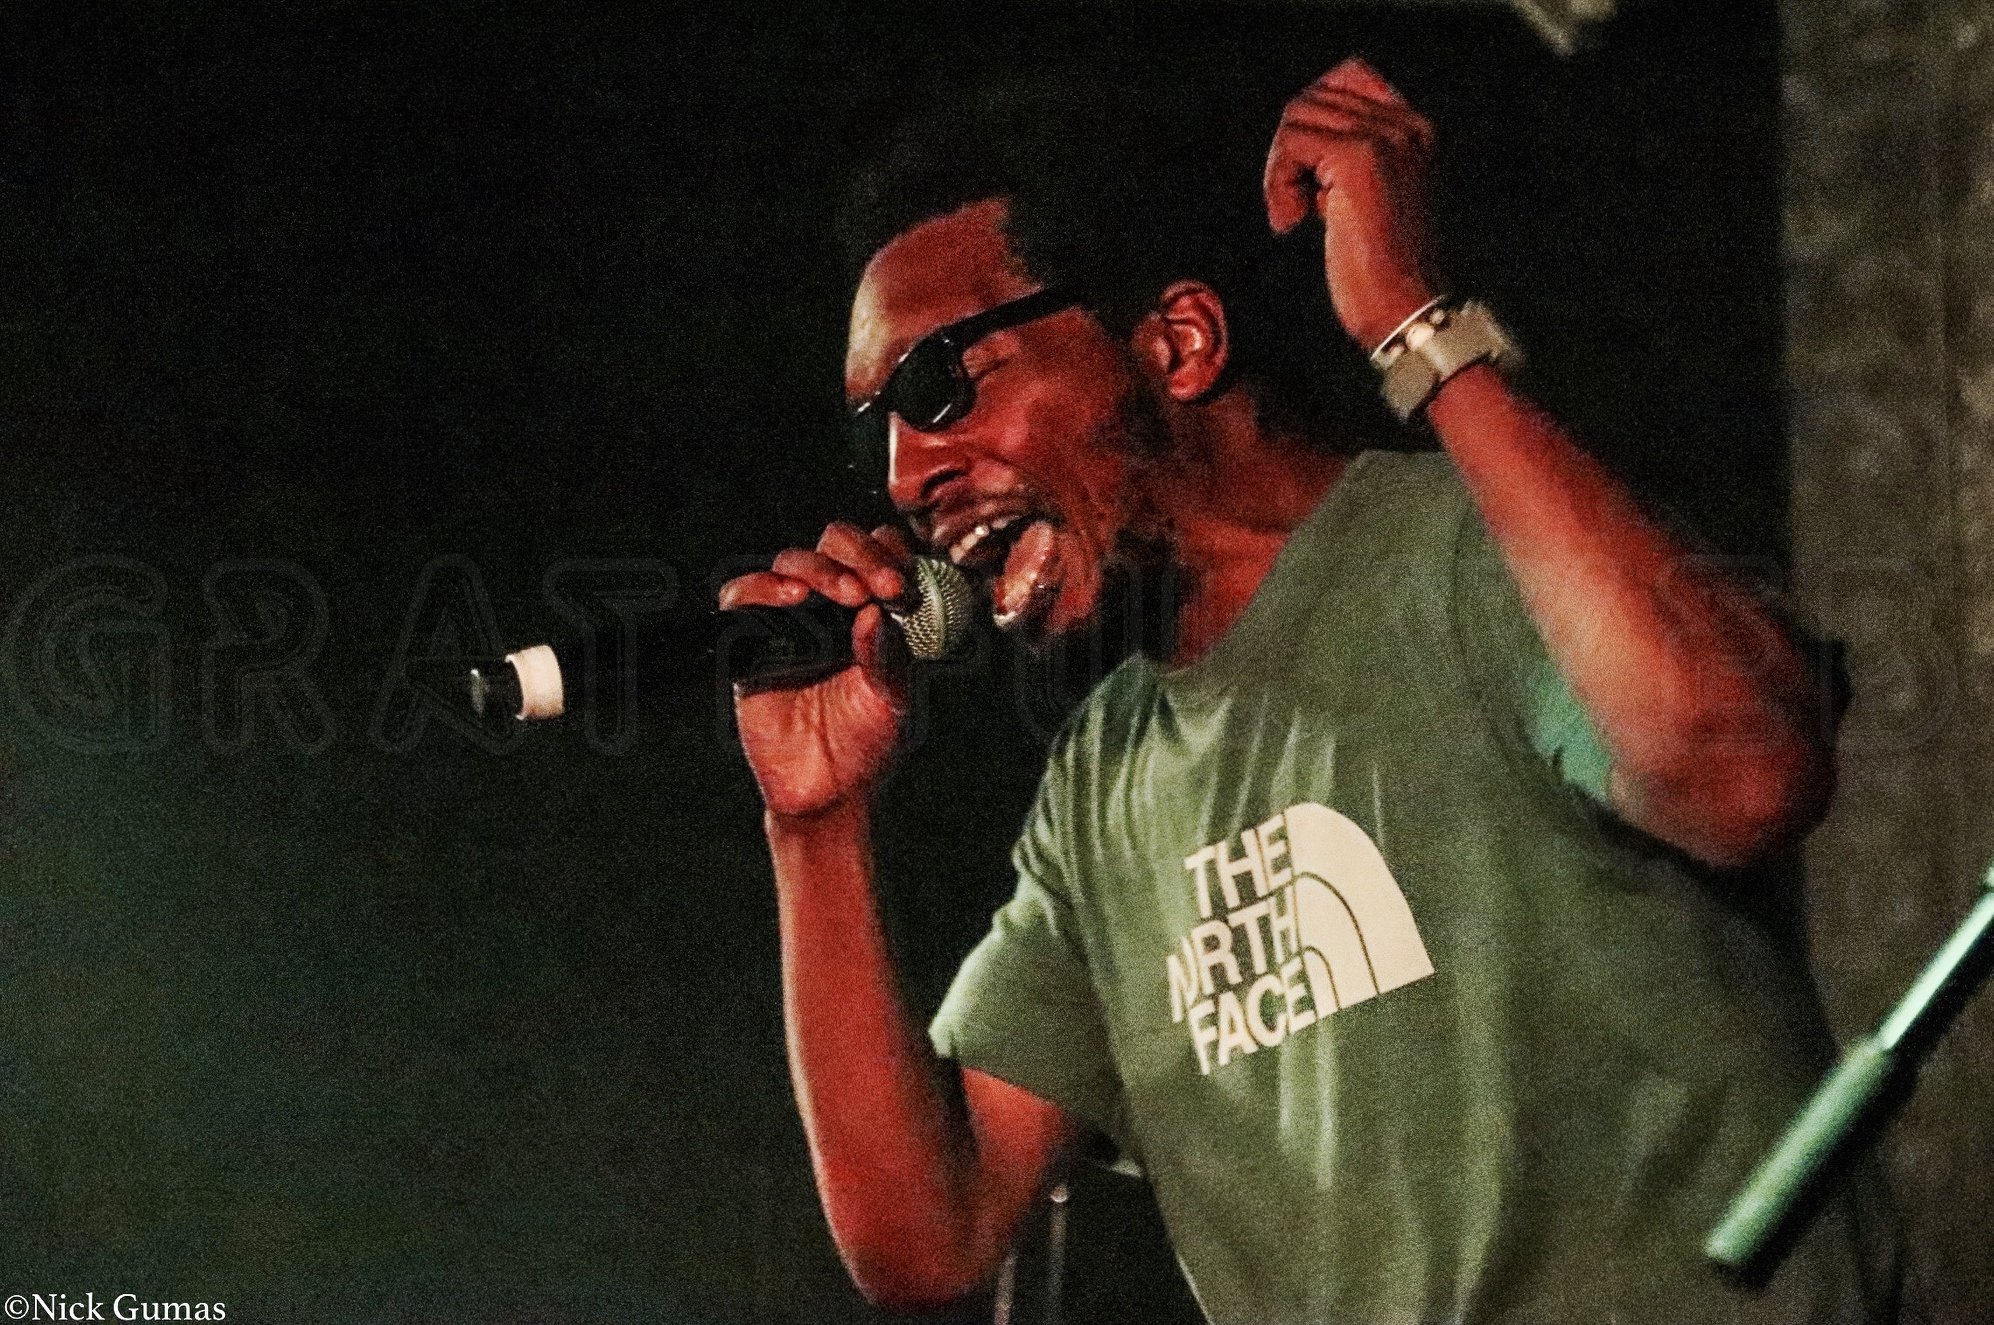 Del the Funky Homosapien | Cali Roots